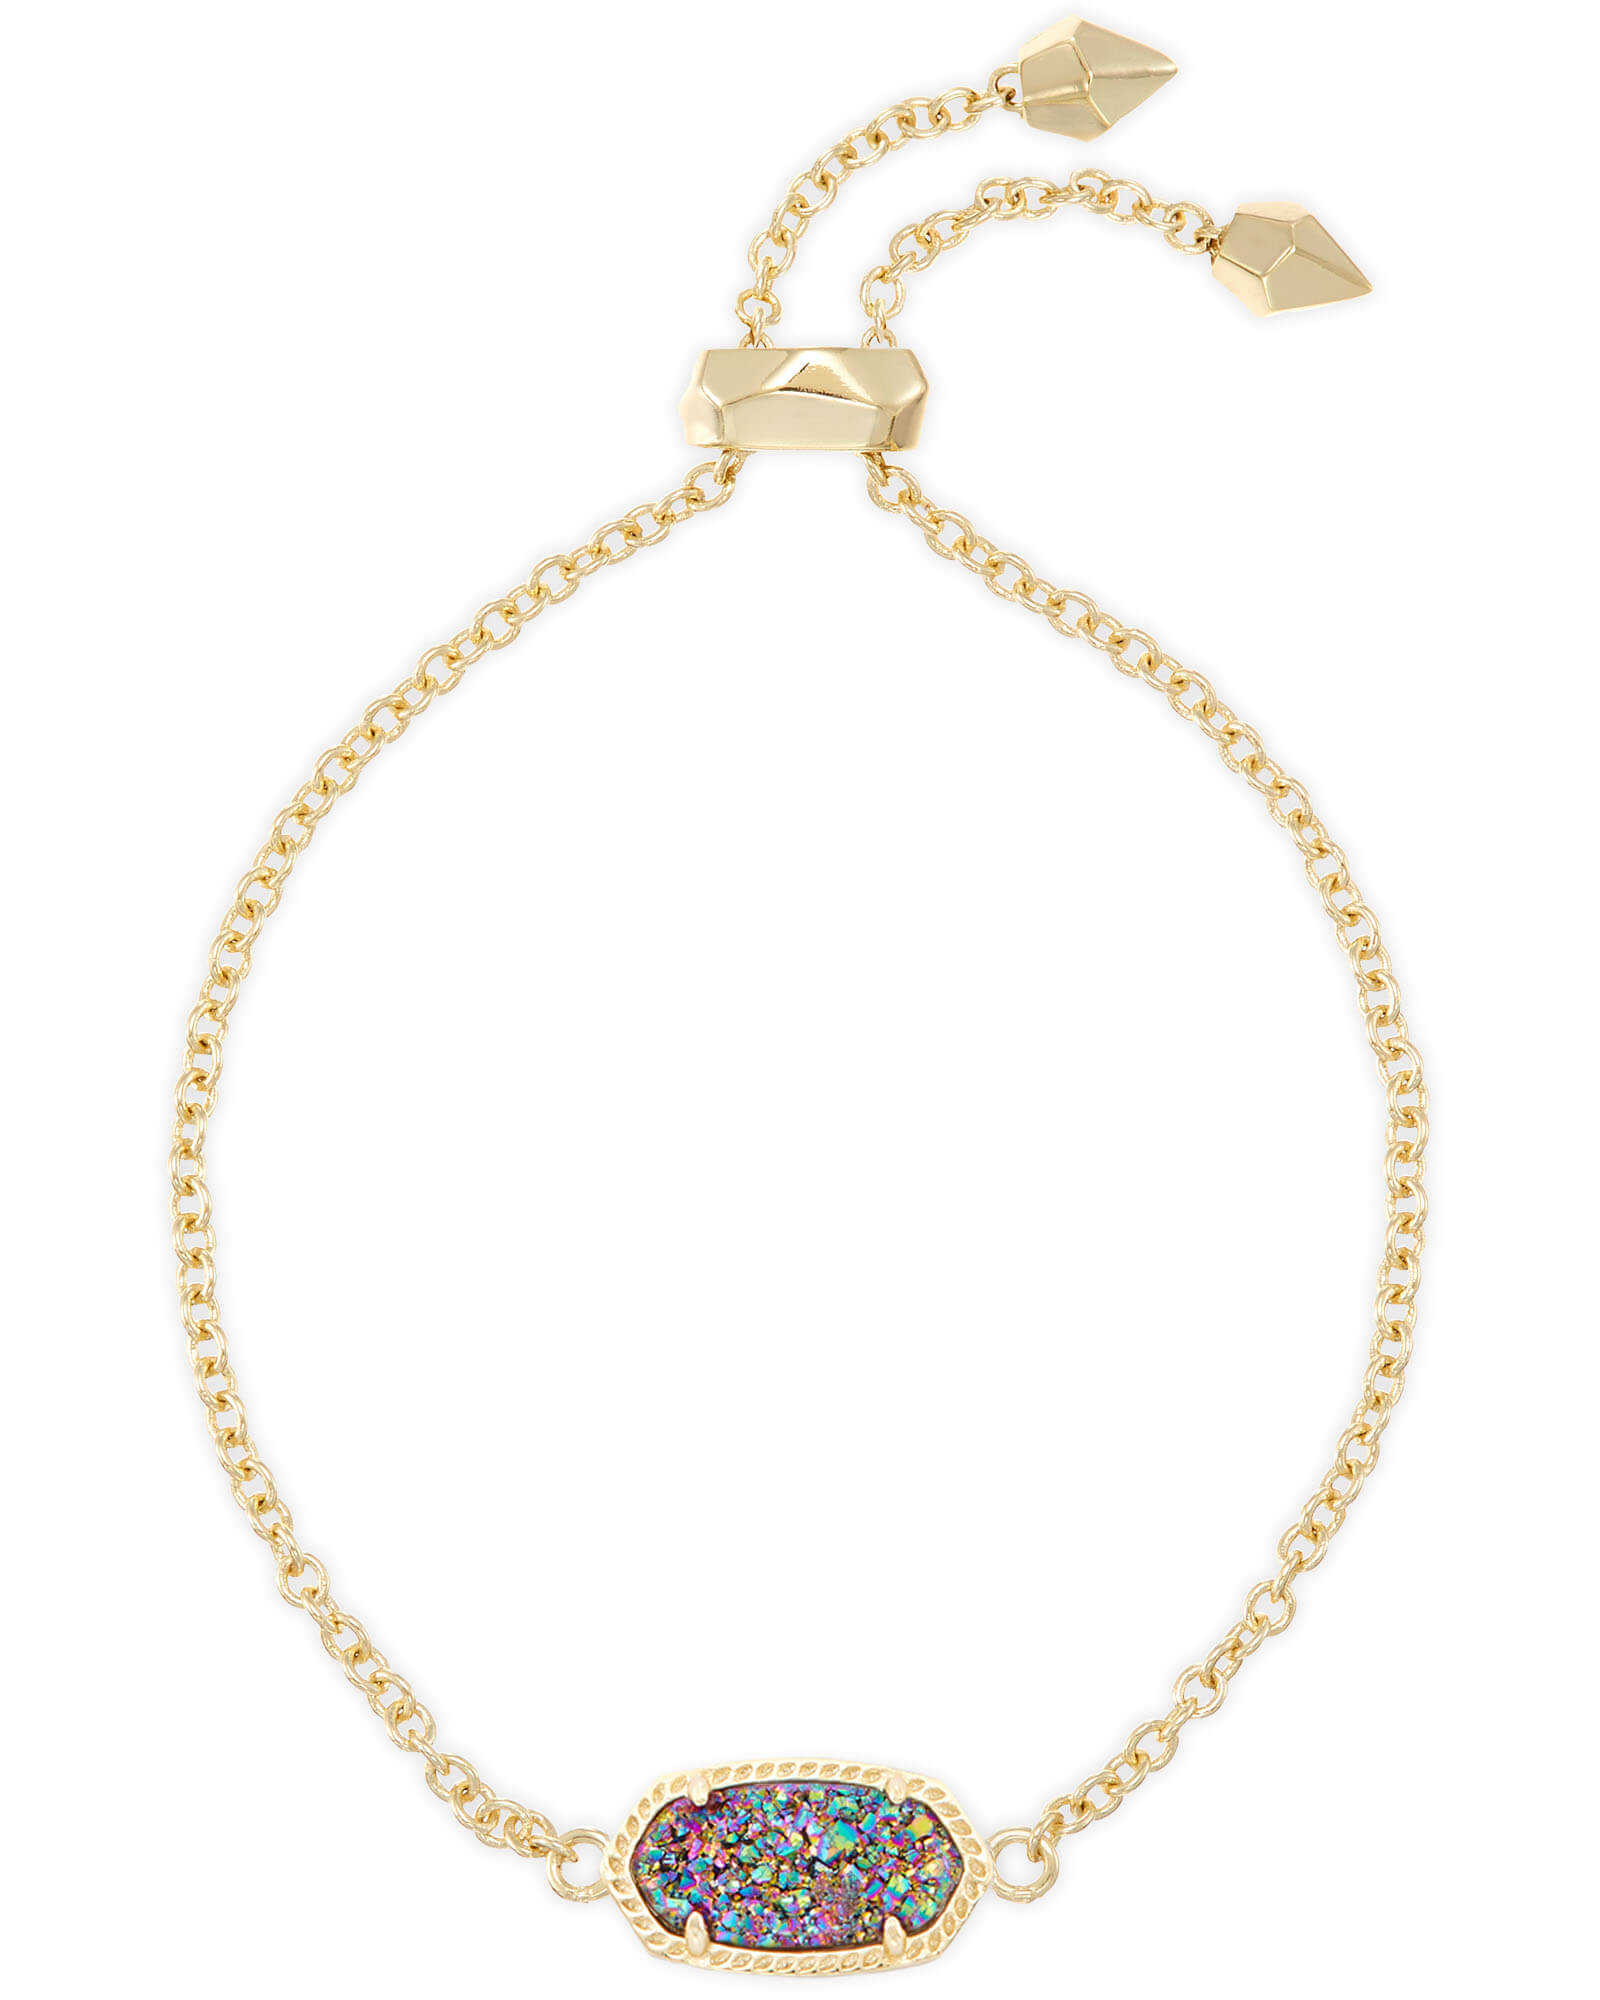 Elaina Gold Adjustable Chain Bracelet in Multicolor Drusy